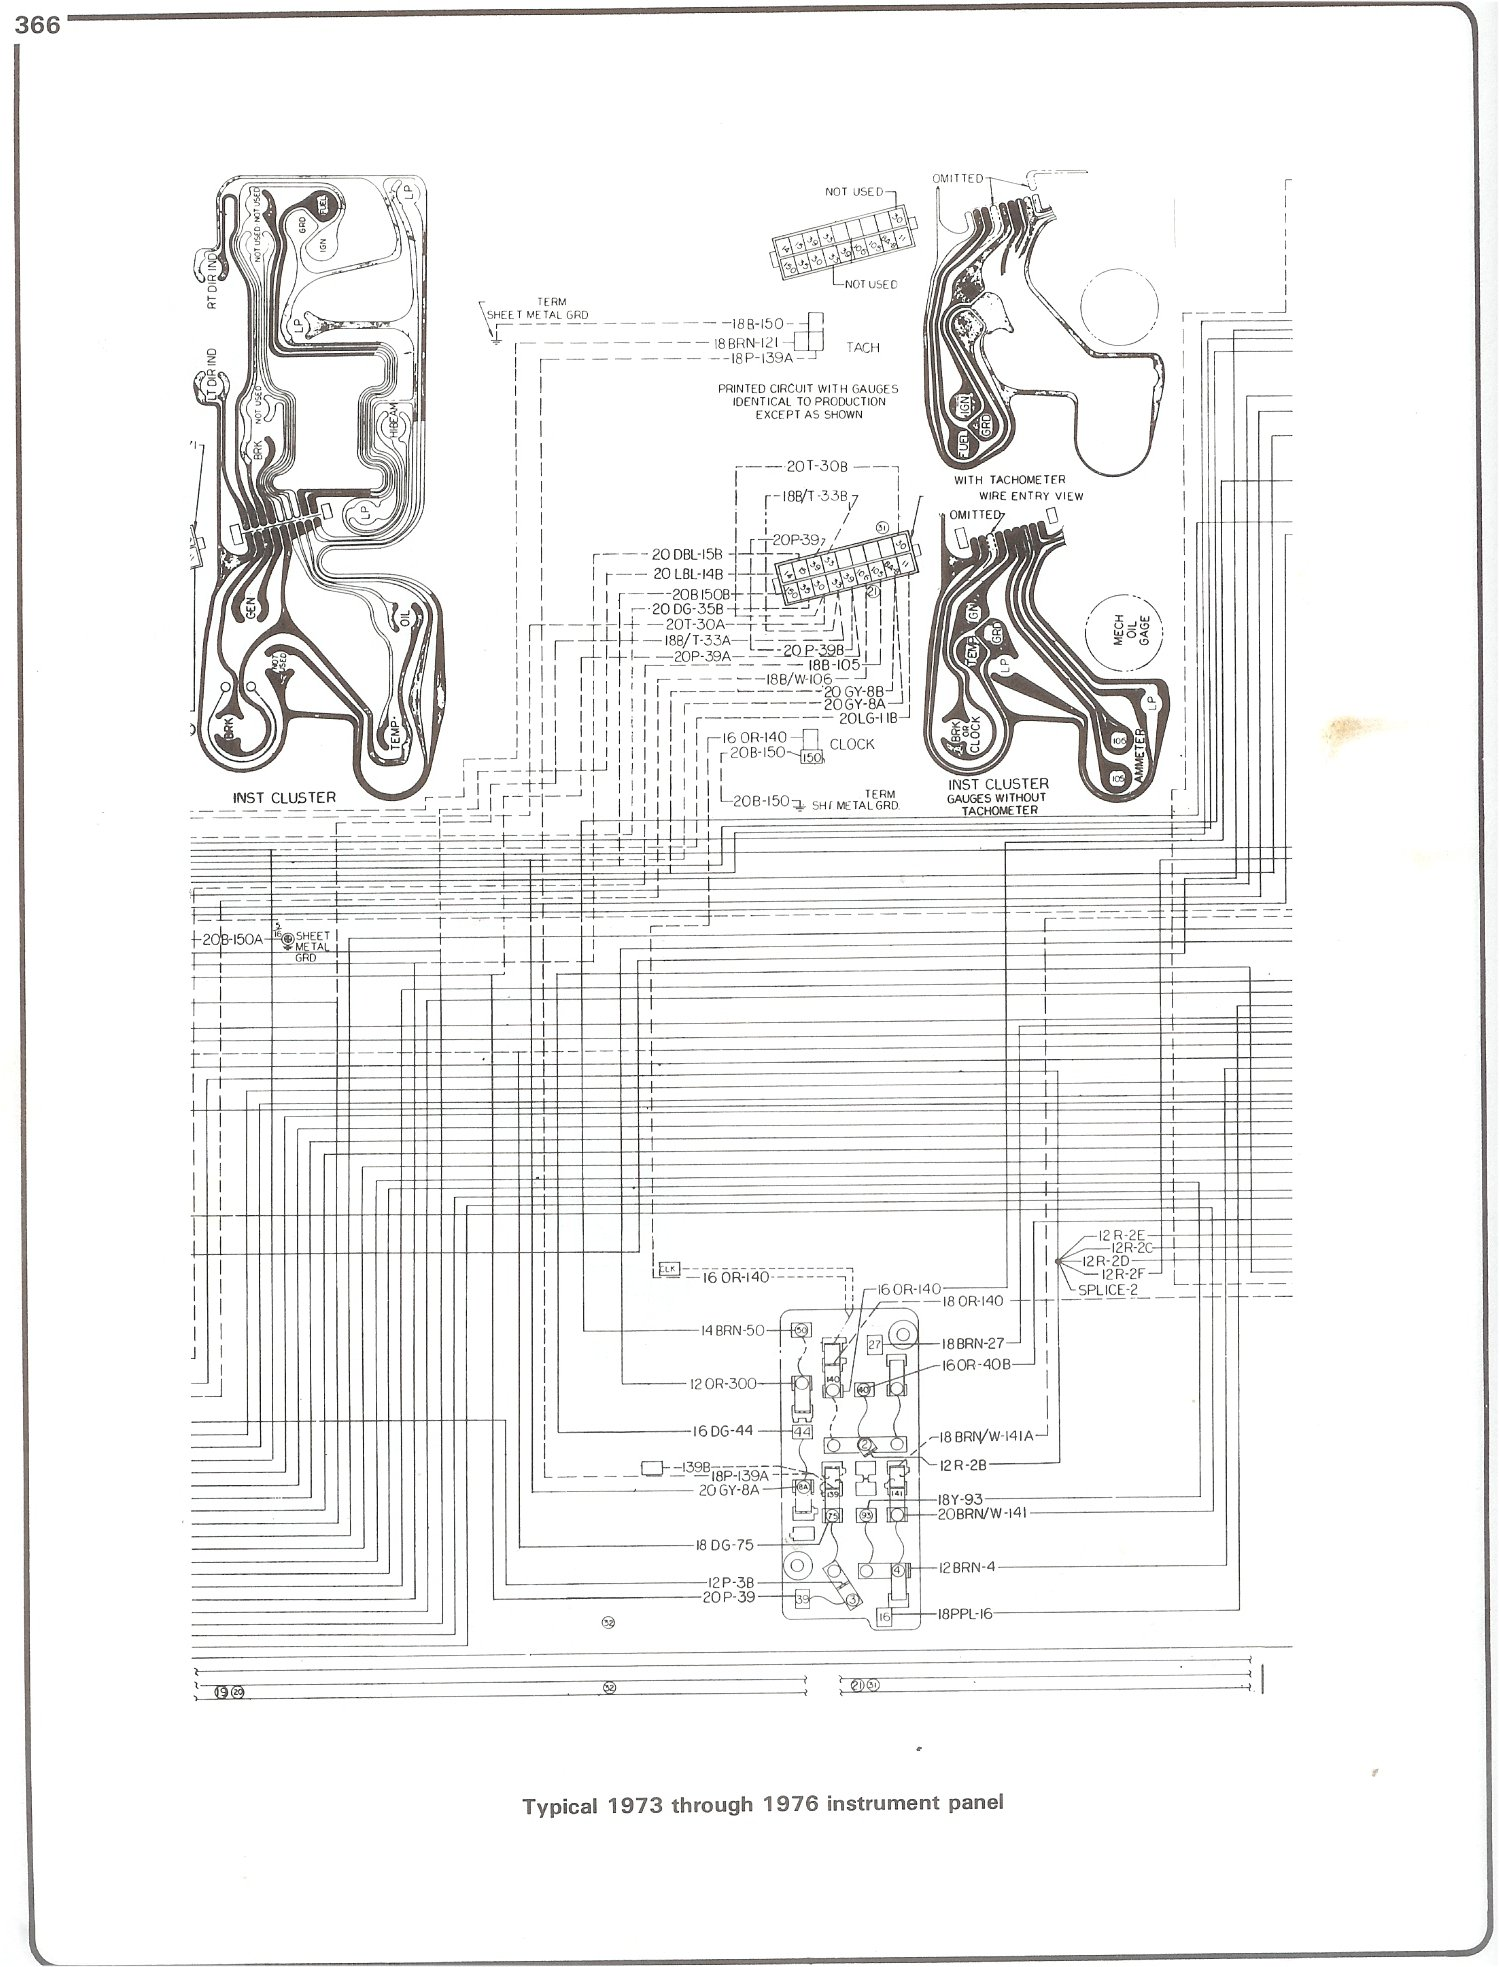 Fuse Panel Diagram For 1979 Chevrolet Van Block And Schematic Jeep Fuse  Block Diagram 1973 Camaro Fuse Block Diagram